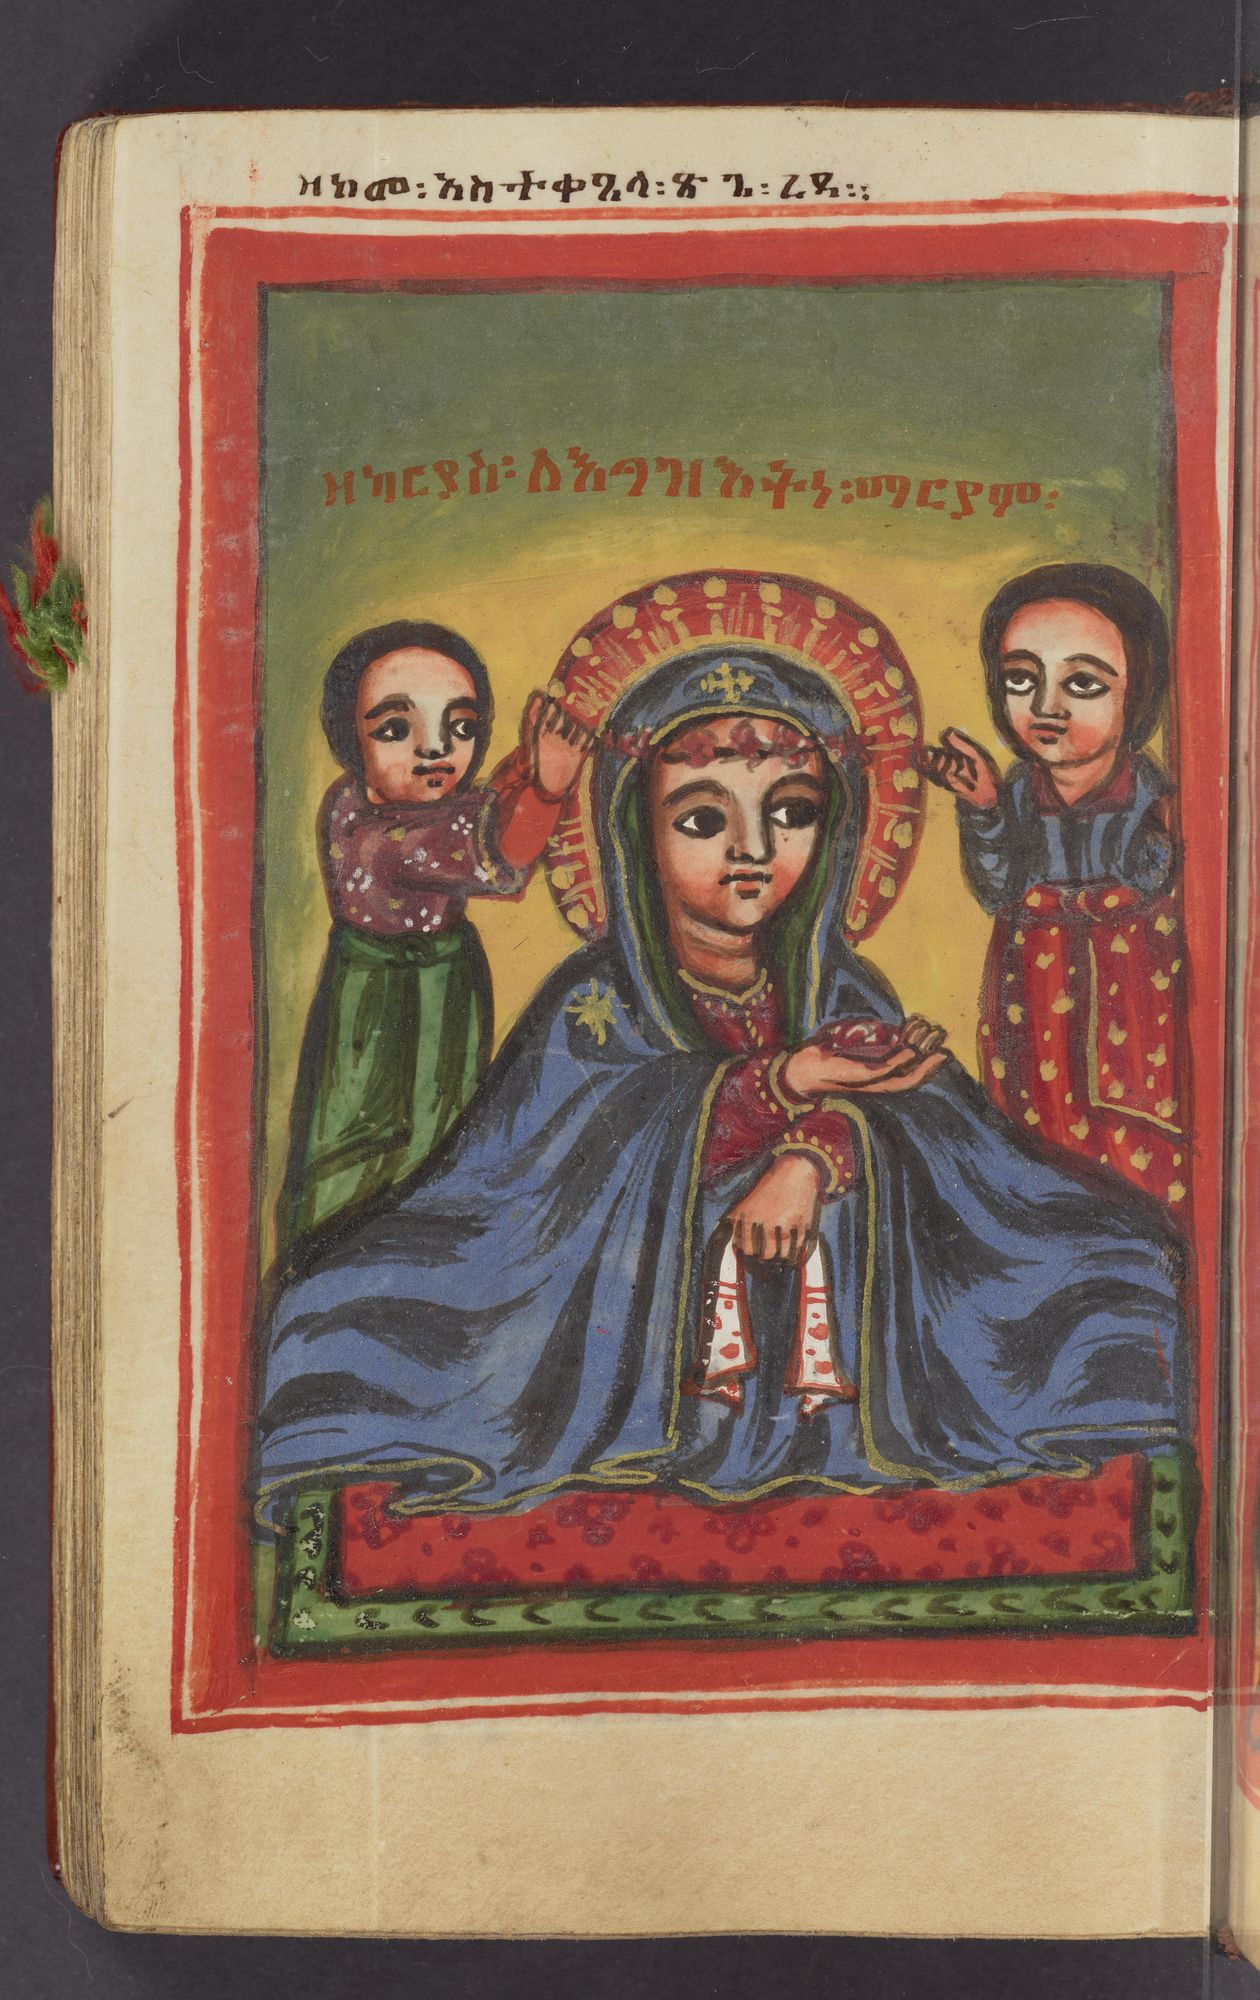 Image of Mary being crowned with roses